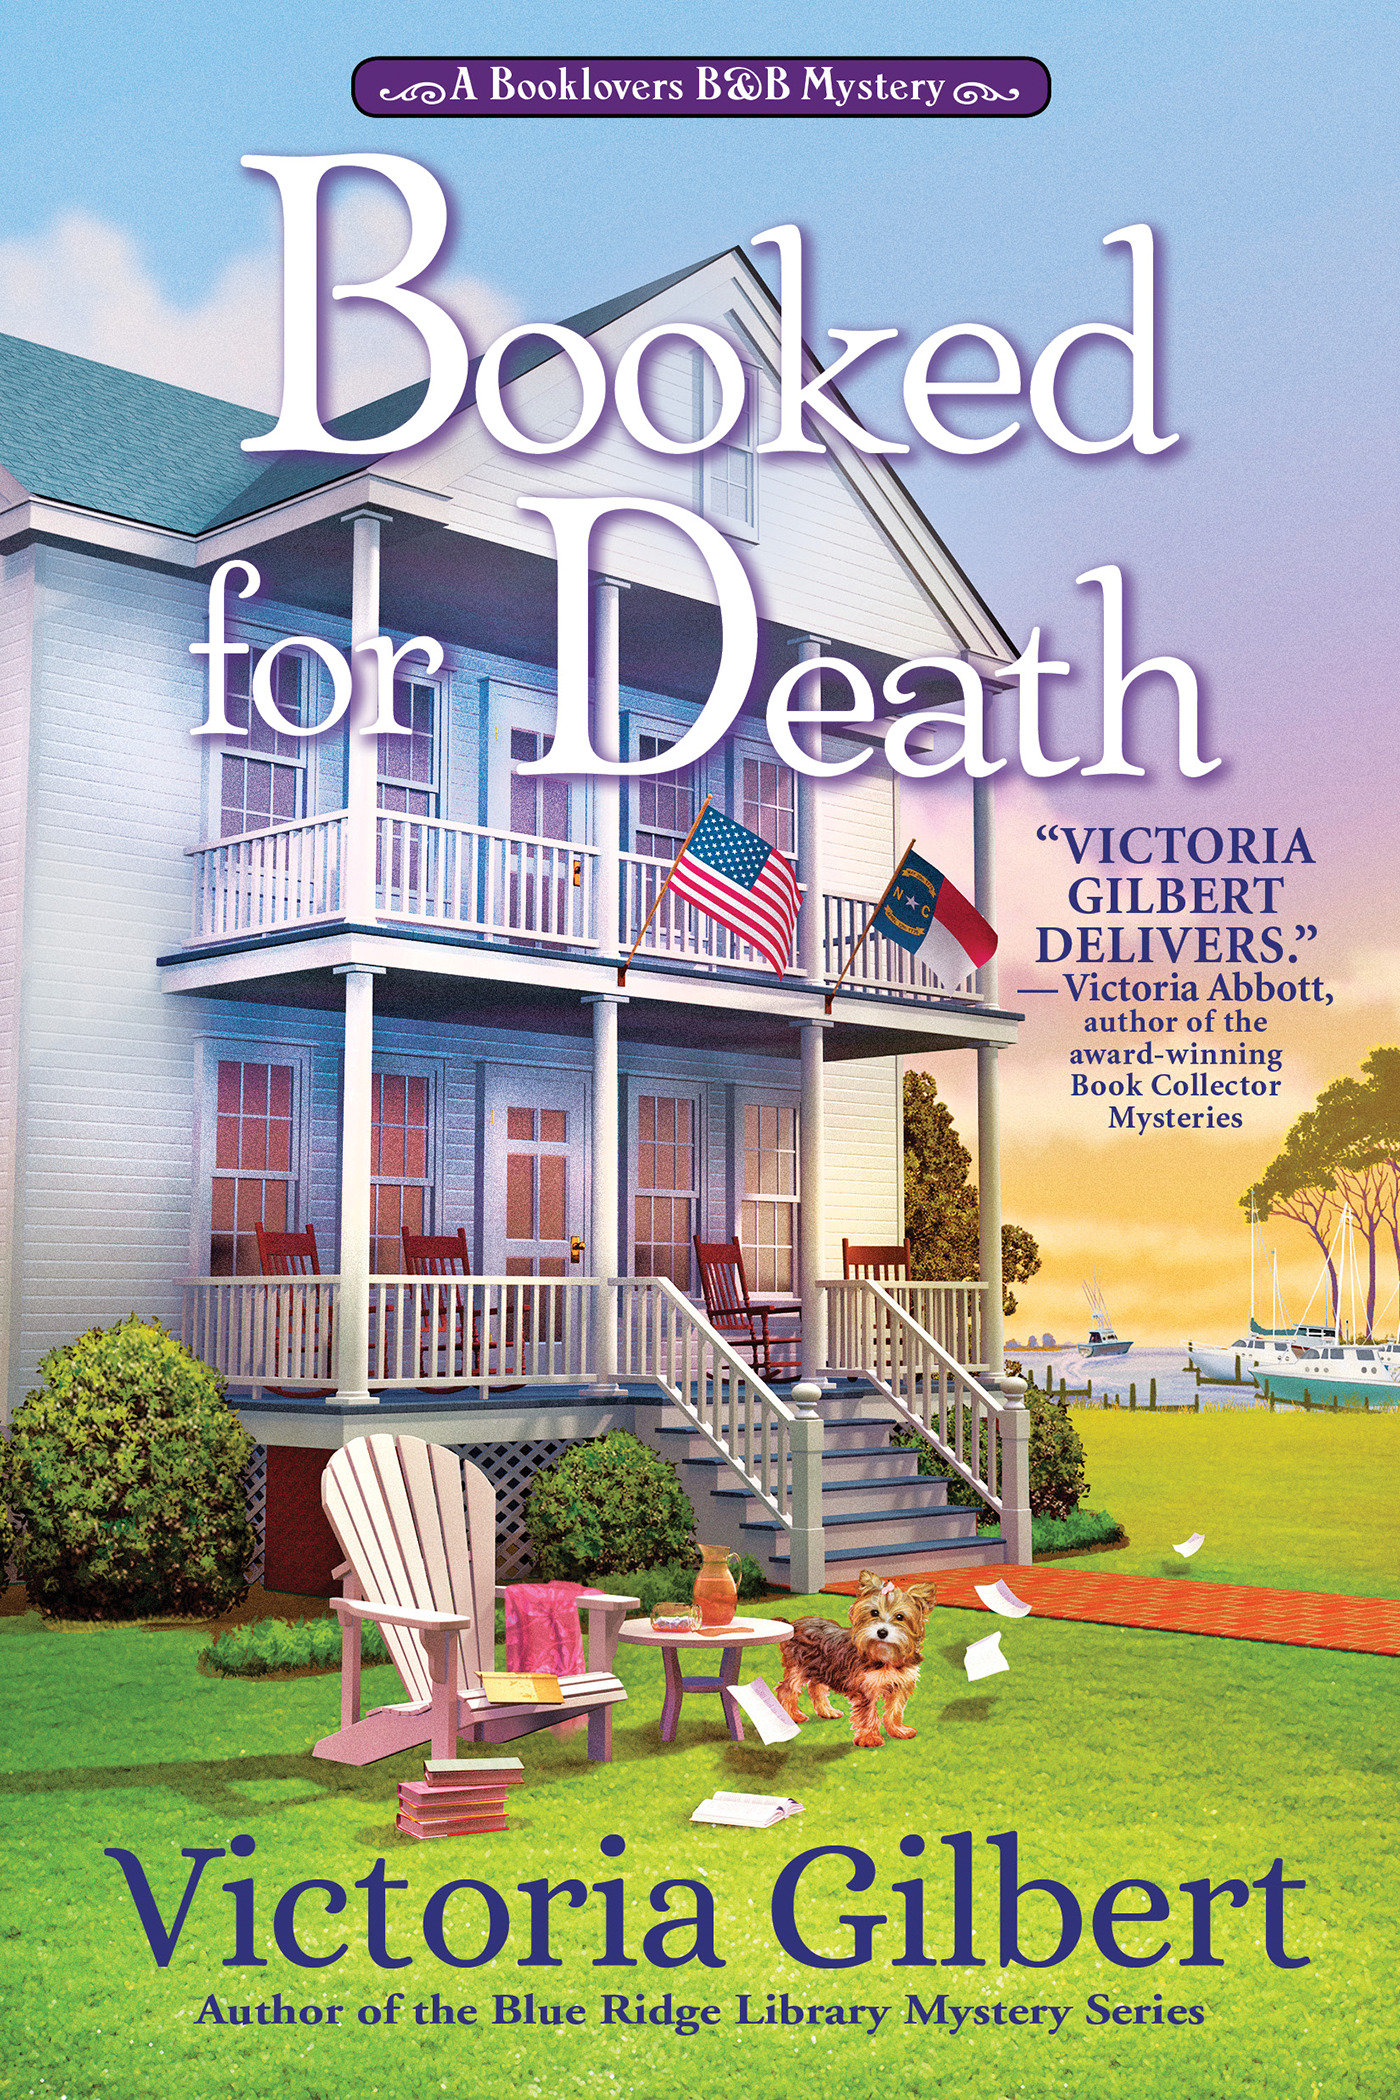 Booked for Death [electronic resource (downloadable eBook)] : a Booklover's B&B Mystery